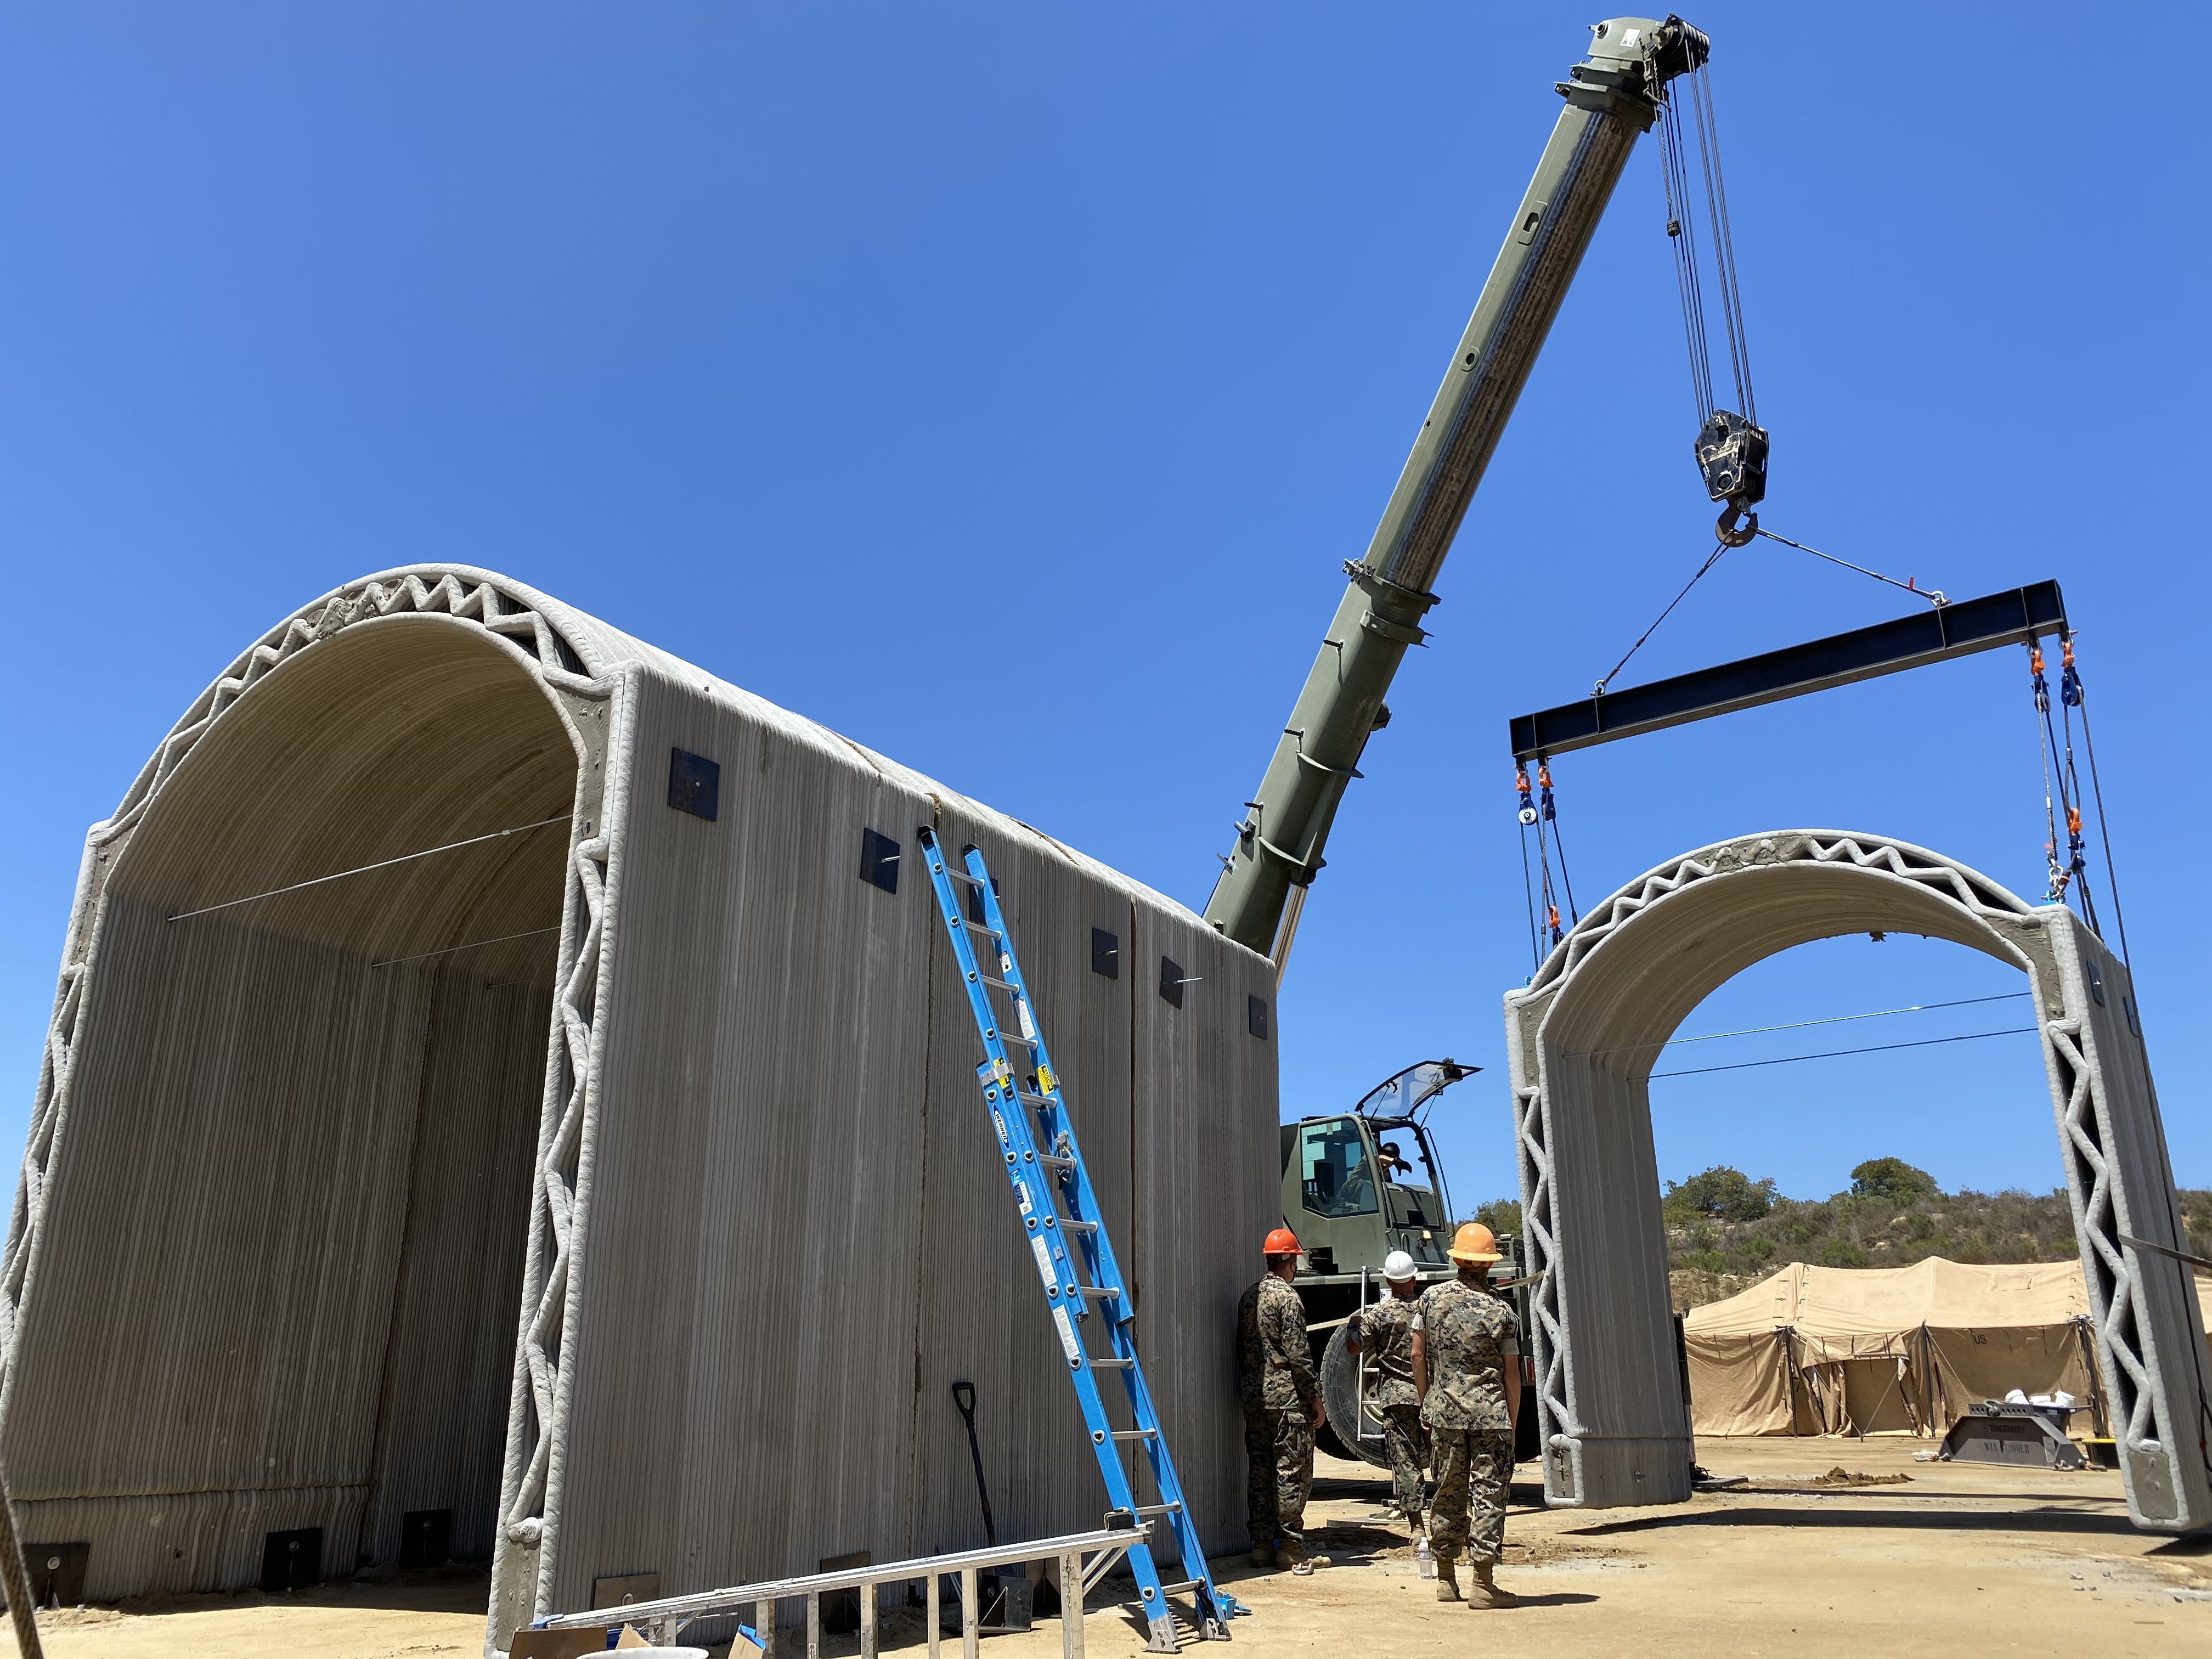 Featured image shows the ICON and US marines' 3D printed concrete vehicle hide structure. Photo via ICON.